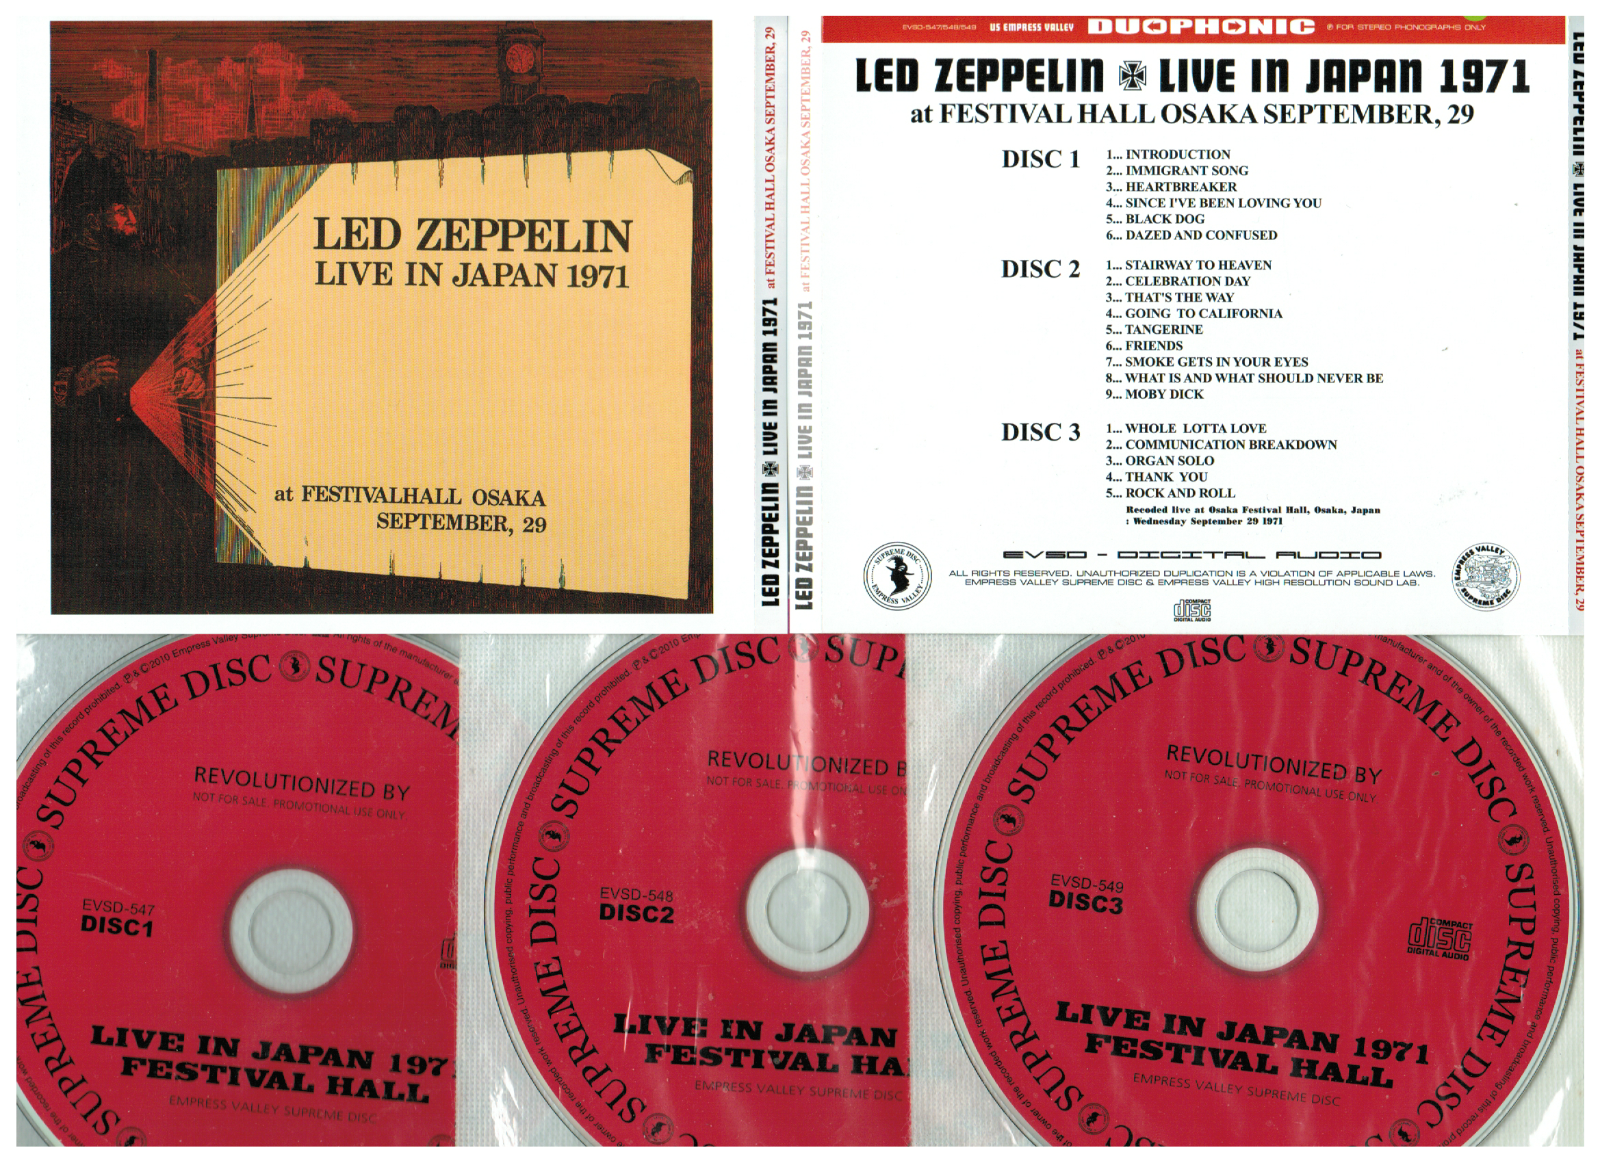 popsike com - Led Zeppelin 3CD Live In Japan 1971 Osaka